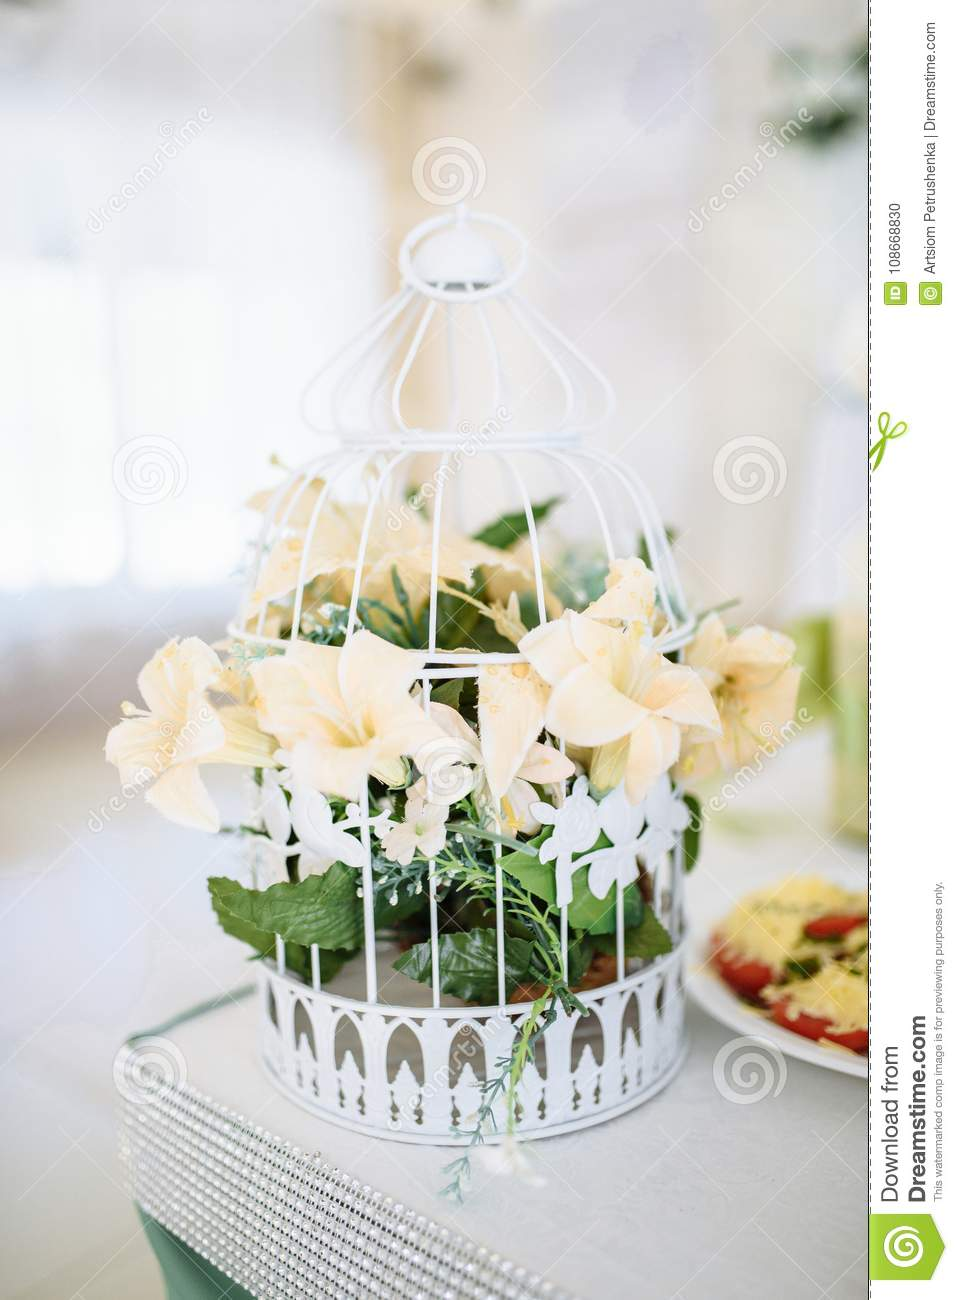 A bouquet of flowers in a decorative cage stock photo image of download a bouquet of flowers in a decorative cage stock photo image of holiday izmirmasajfo